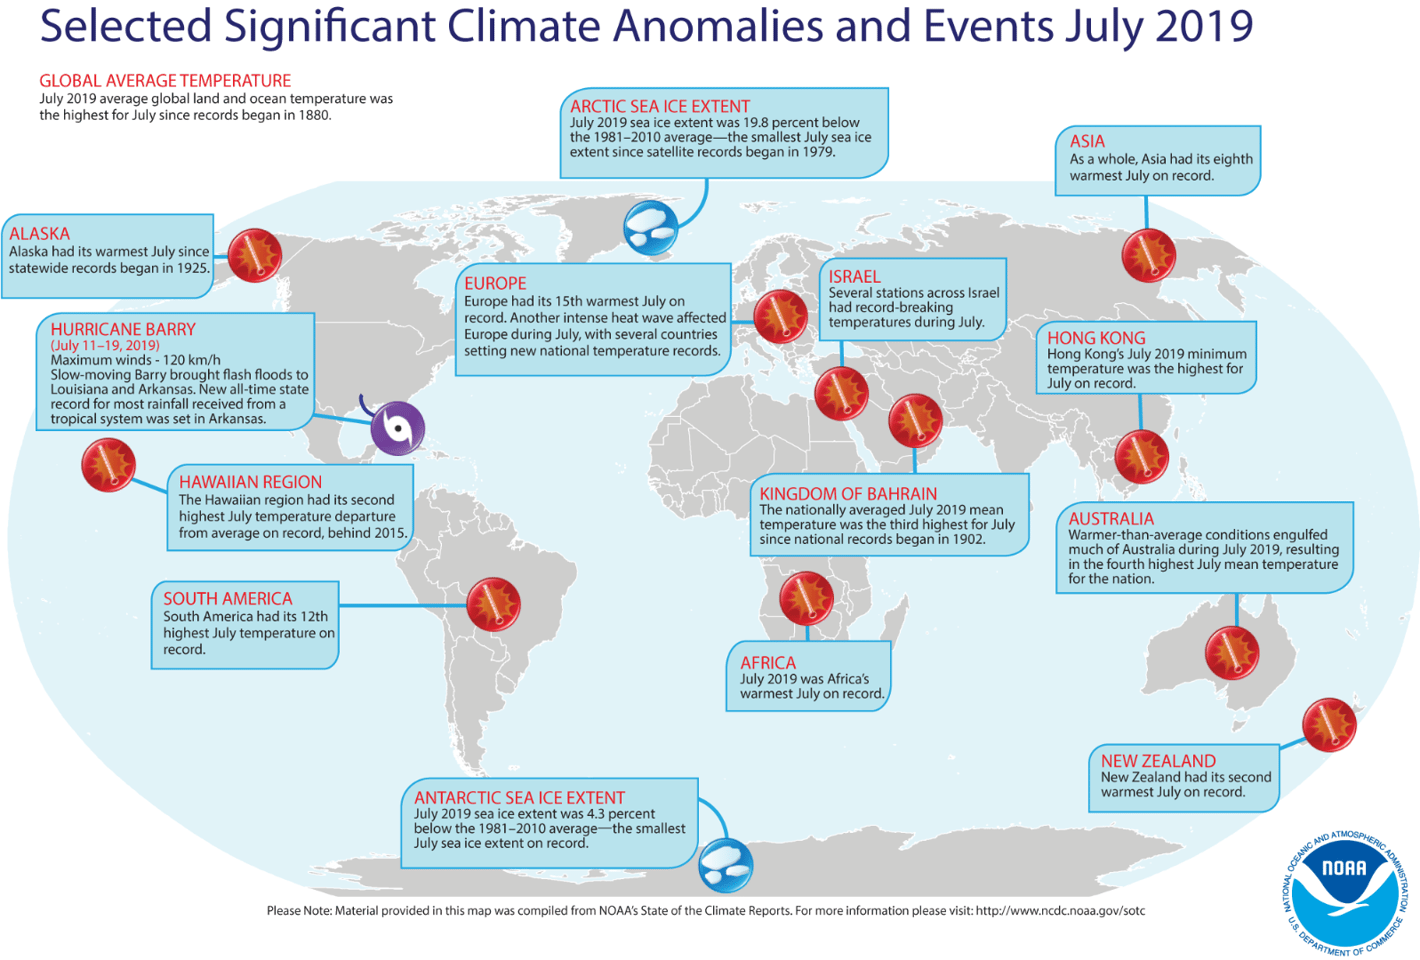 A chart detailing some of the most significant climatic events around the world in July 2019